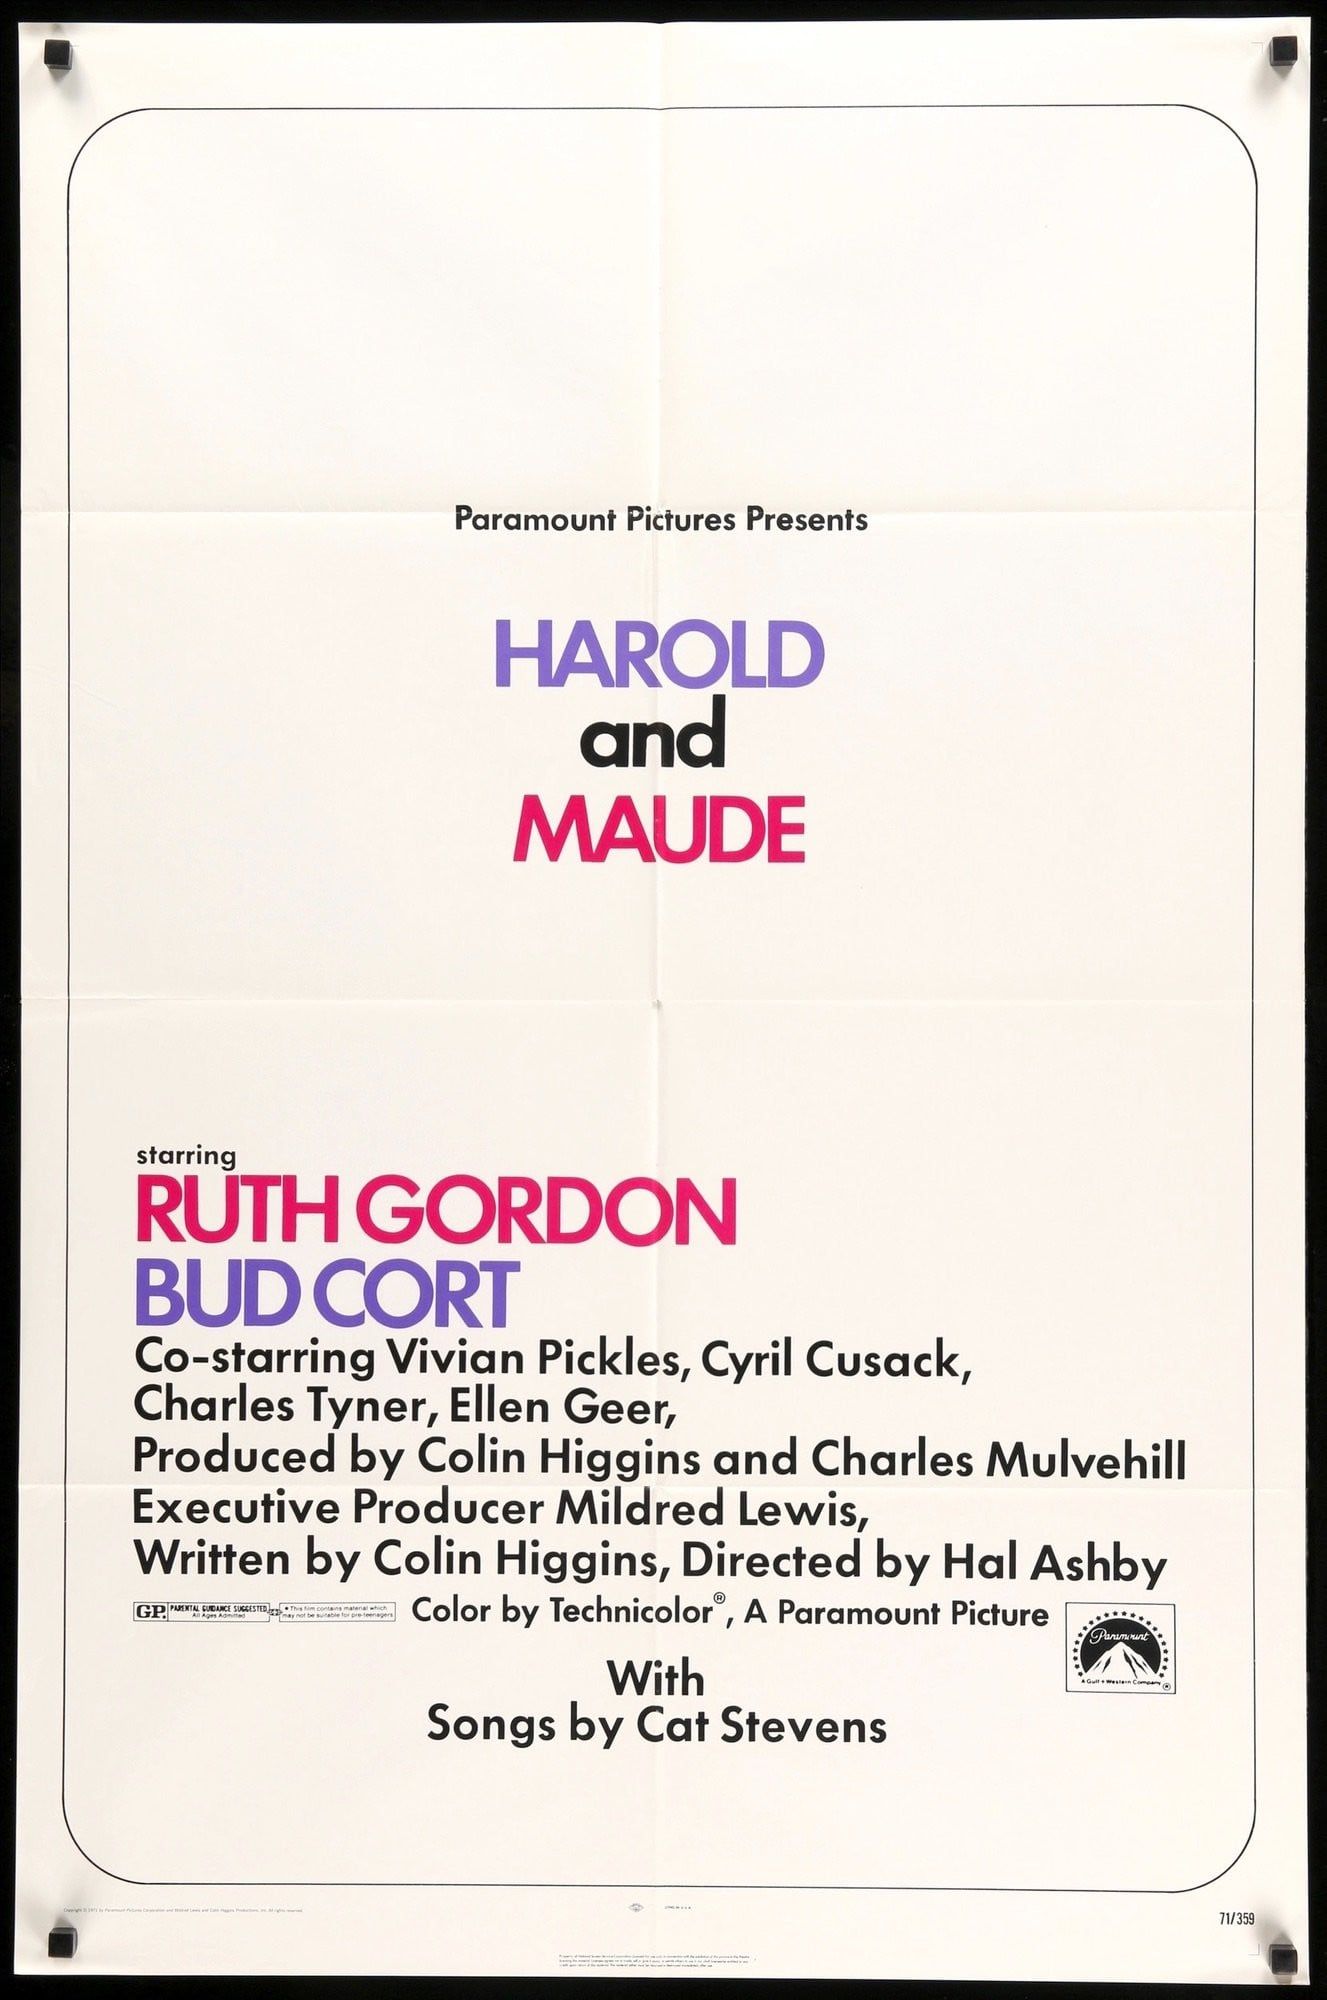 Harold and Maude Vintage Large Movie Poster Art Print A0 A1 A2 A3 A4 Maxi